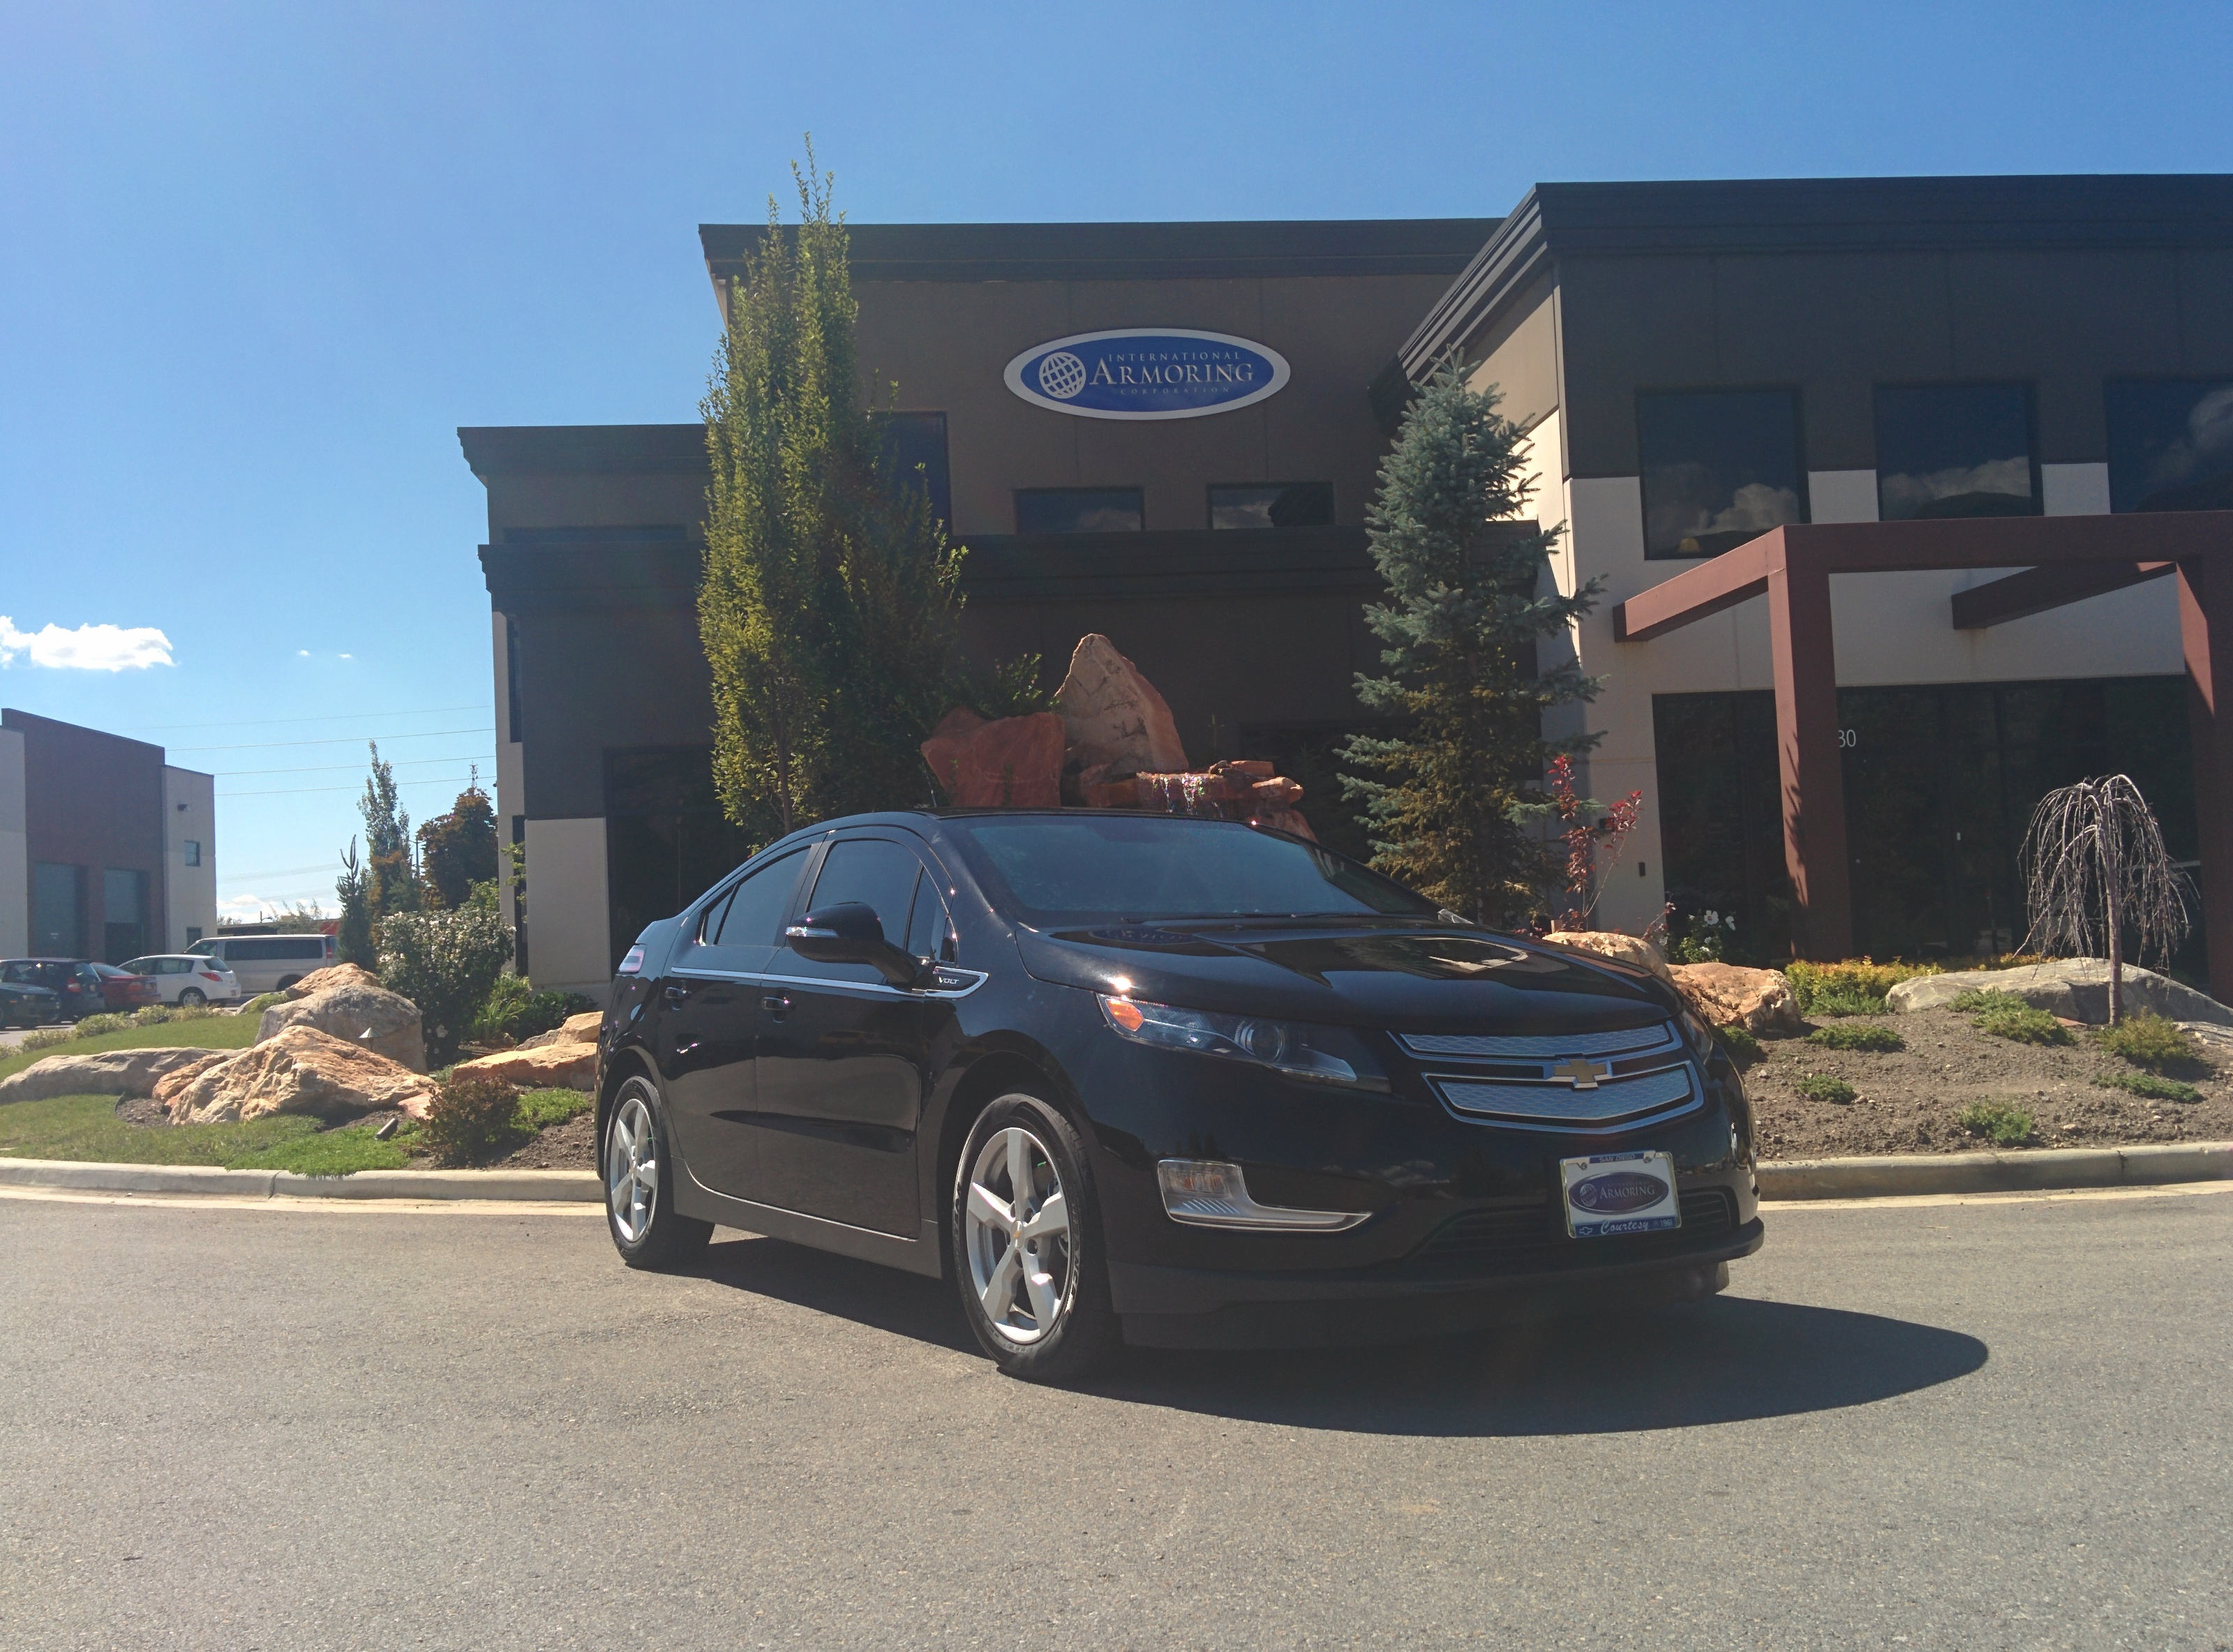 Bulletproof Chevy Volt in front of Armormax Utah facility